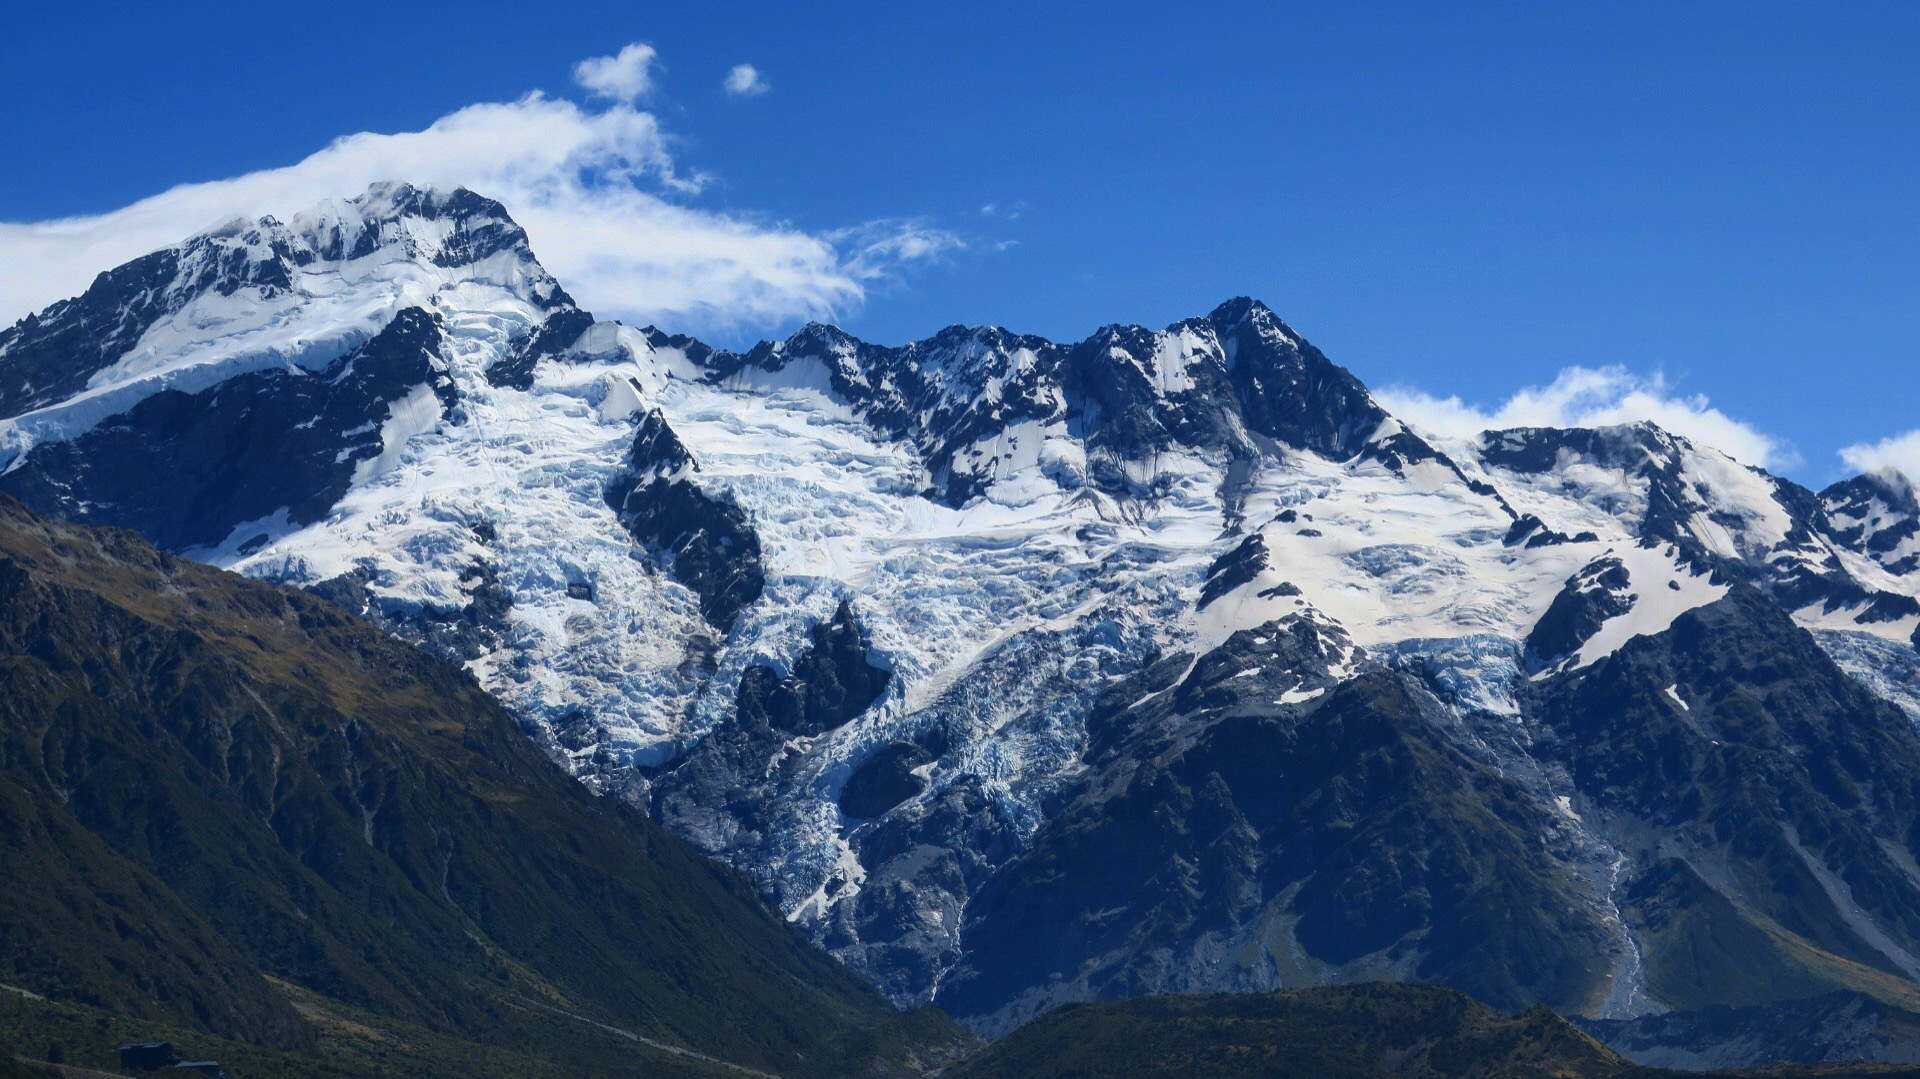 A lot of ice around mount cook